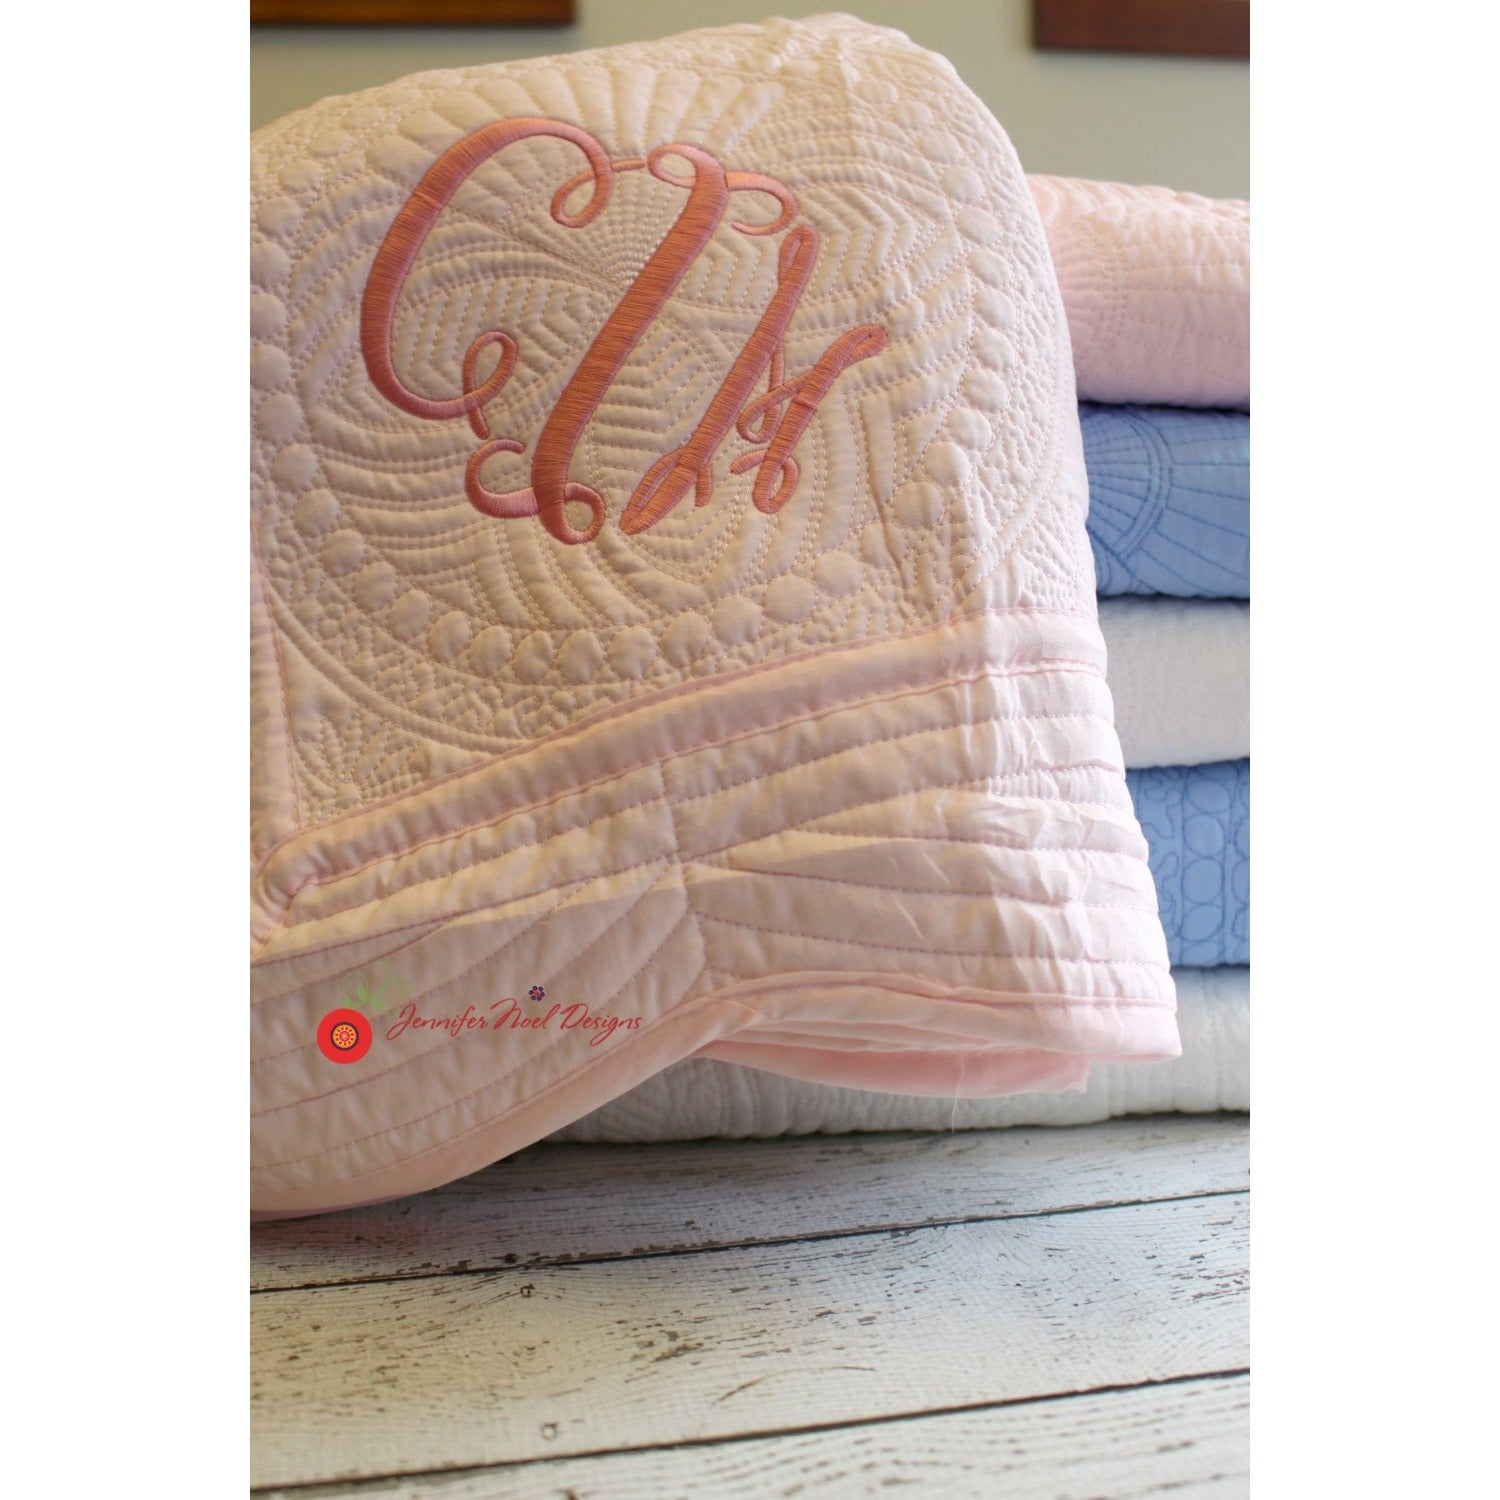 Personalized Baby Quilt - Jennifer Noel Designs